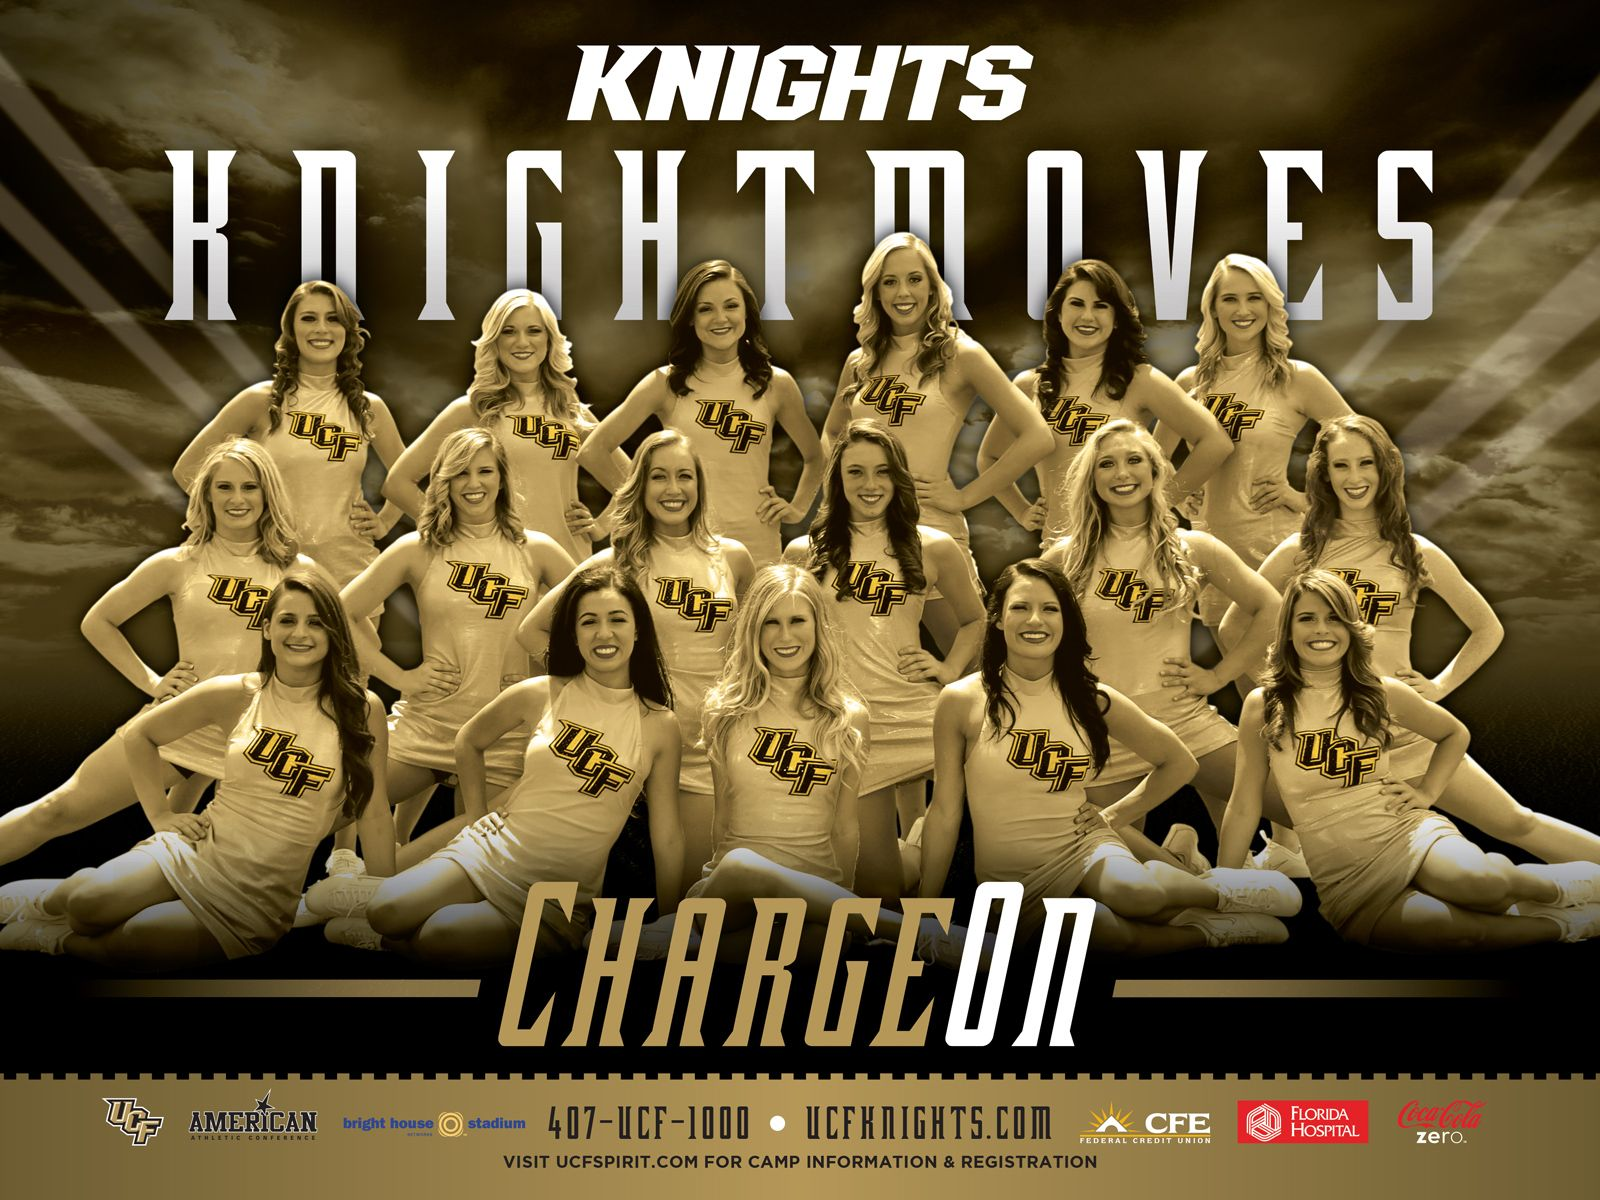 2013 14 Knightmoves Poster My Baby Girl Top Row Far Right Ucf Professional Cheerleaders Ucf Knights